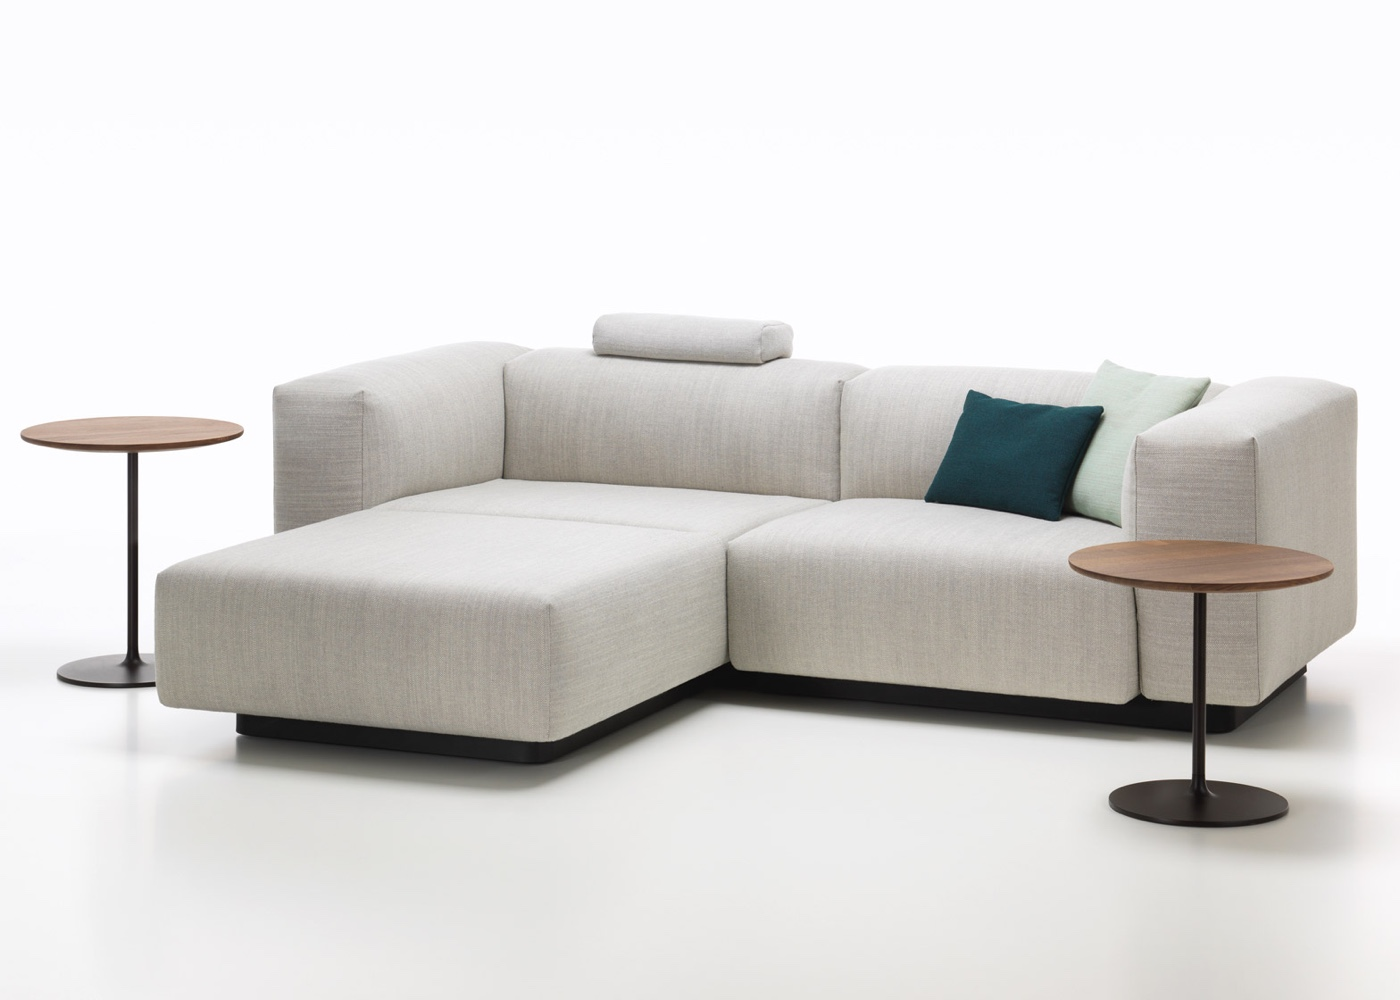 view in gallery soft modular sofa image via dezeen bedroomengaging modular sofa system live